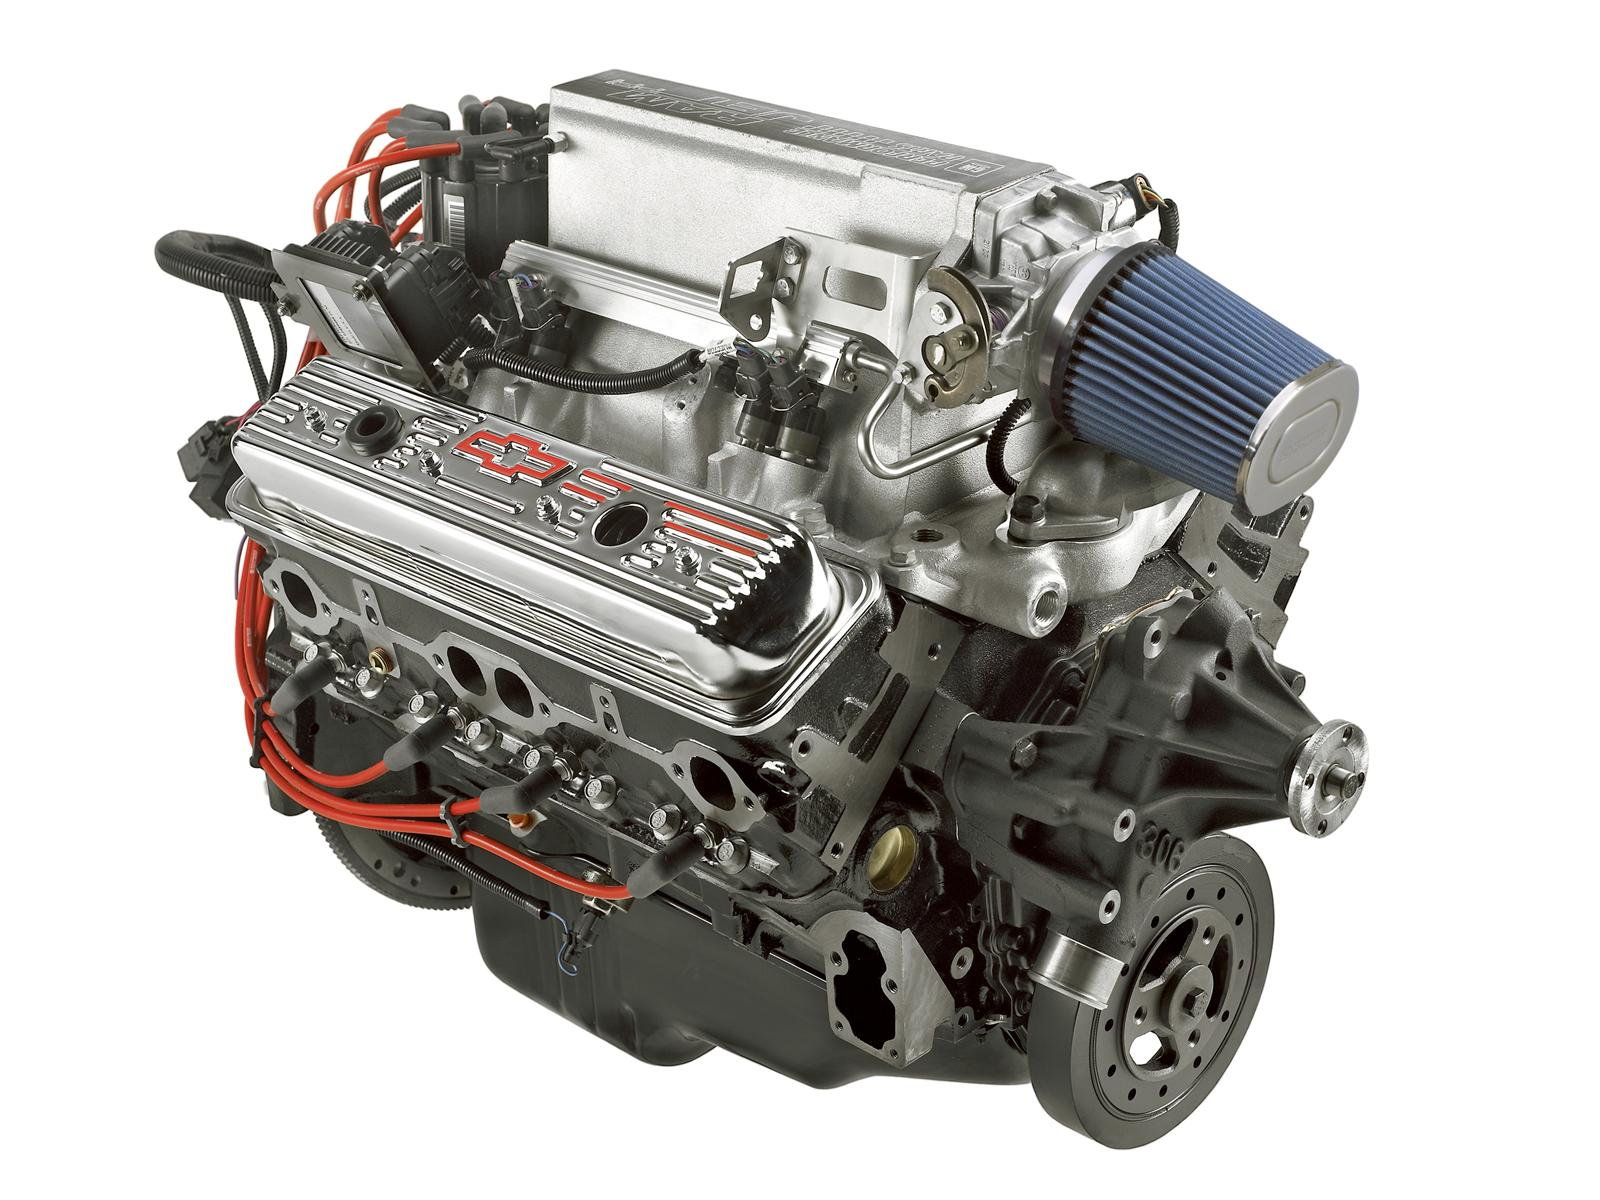 hight resolution of chevrolet performance ram jet 350 c i d 351 hp long block crate engines 12499120 free shipping